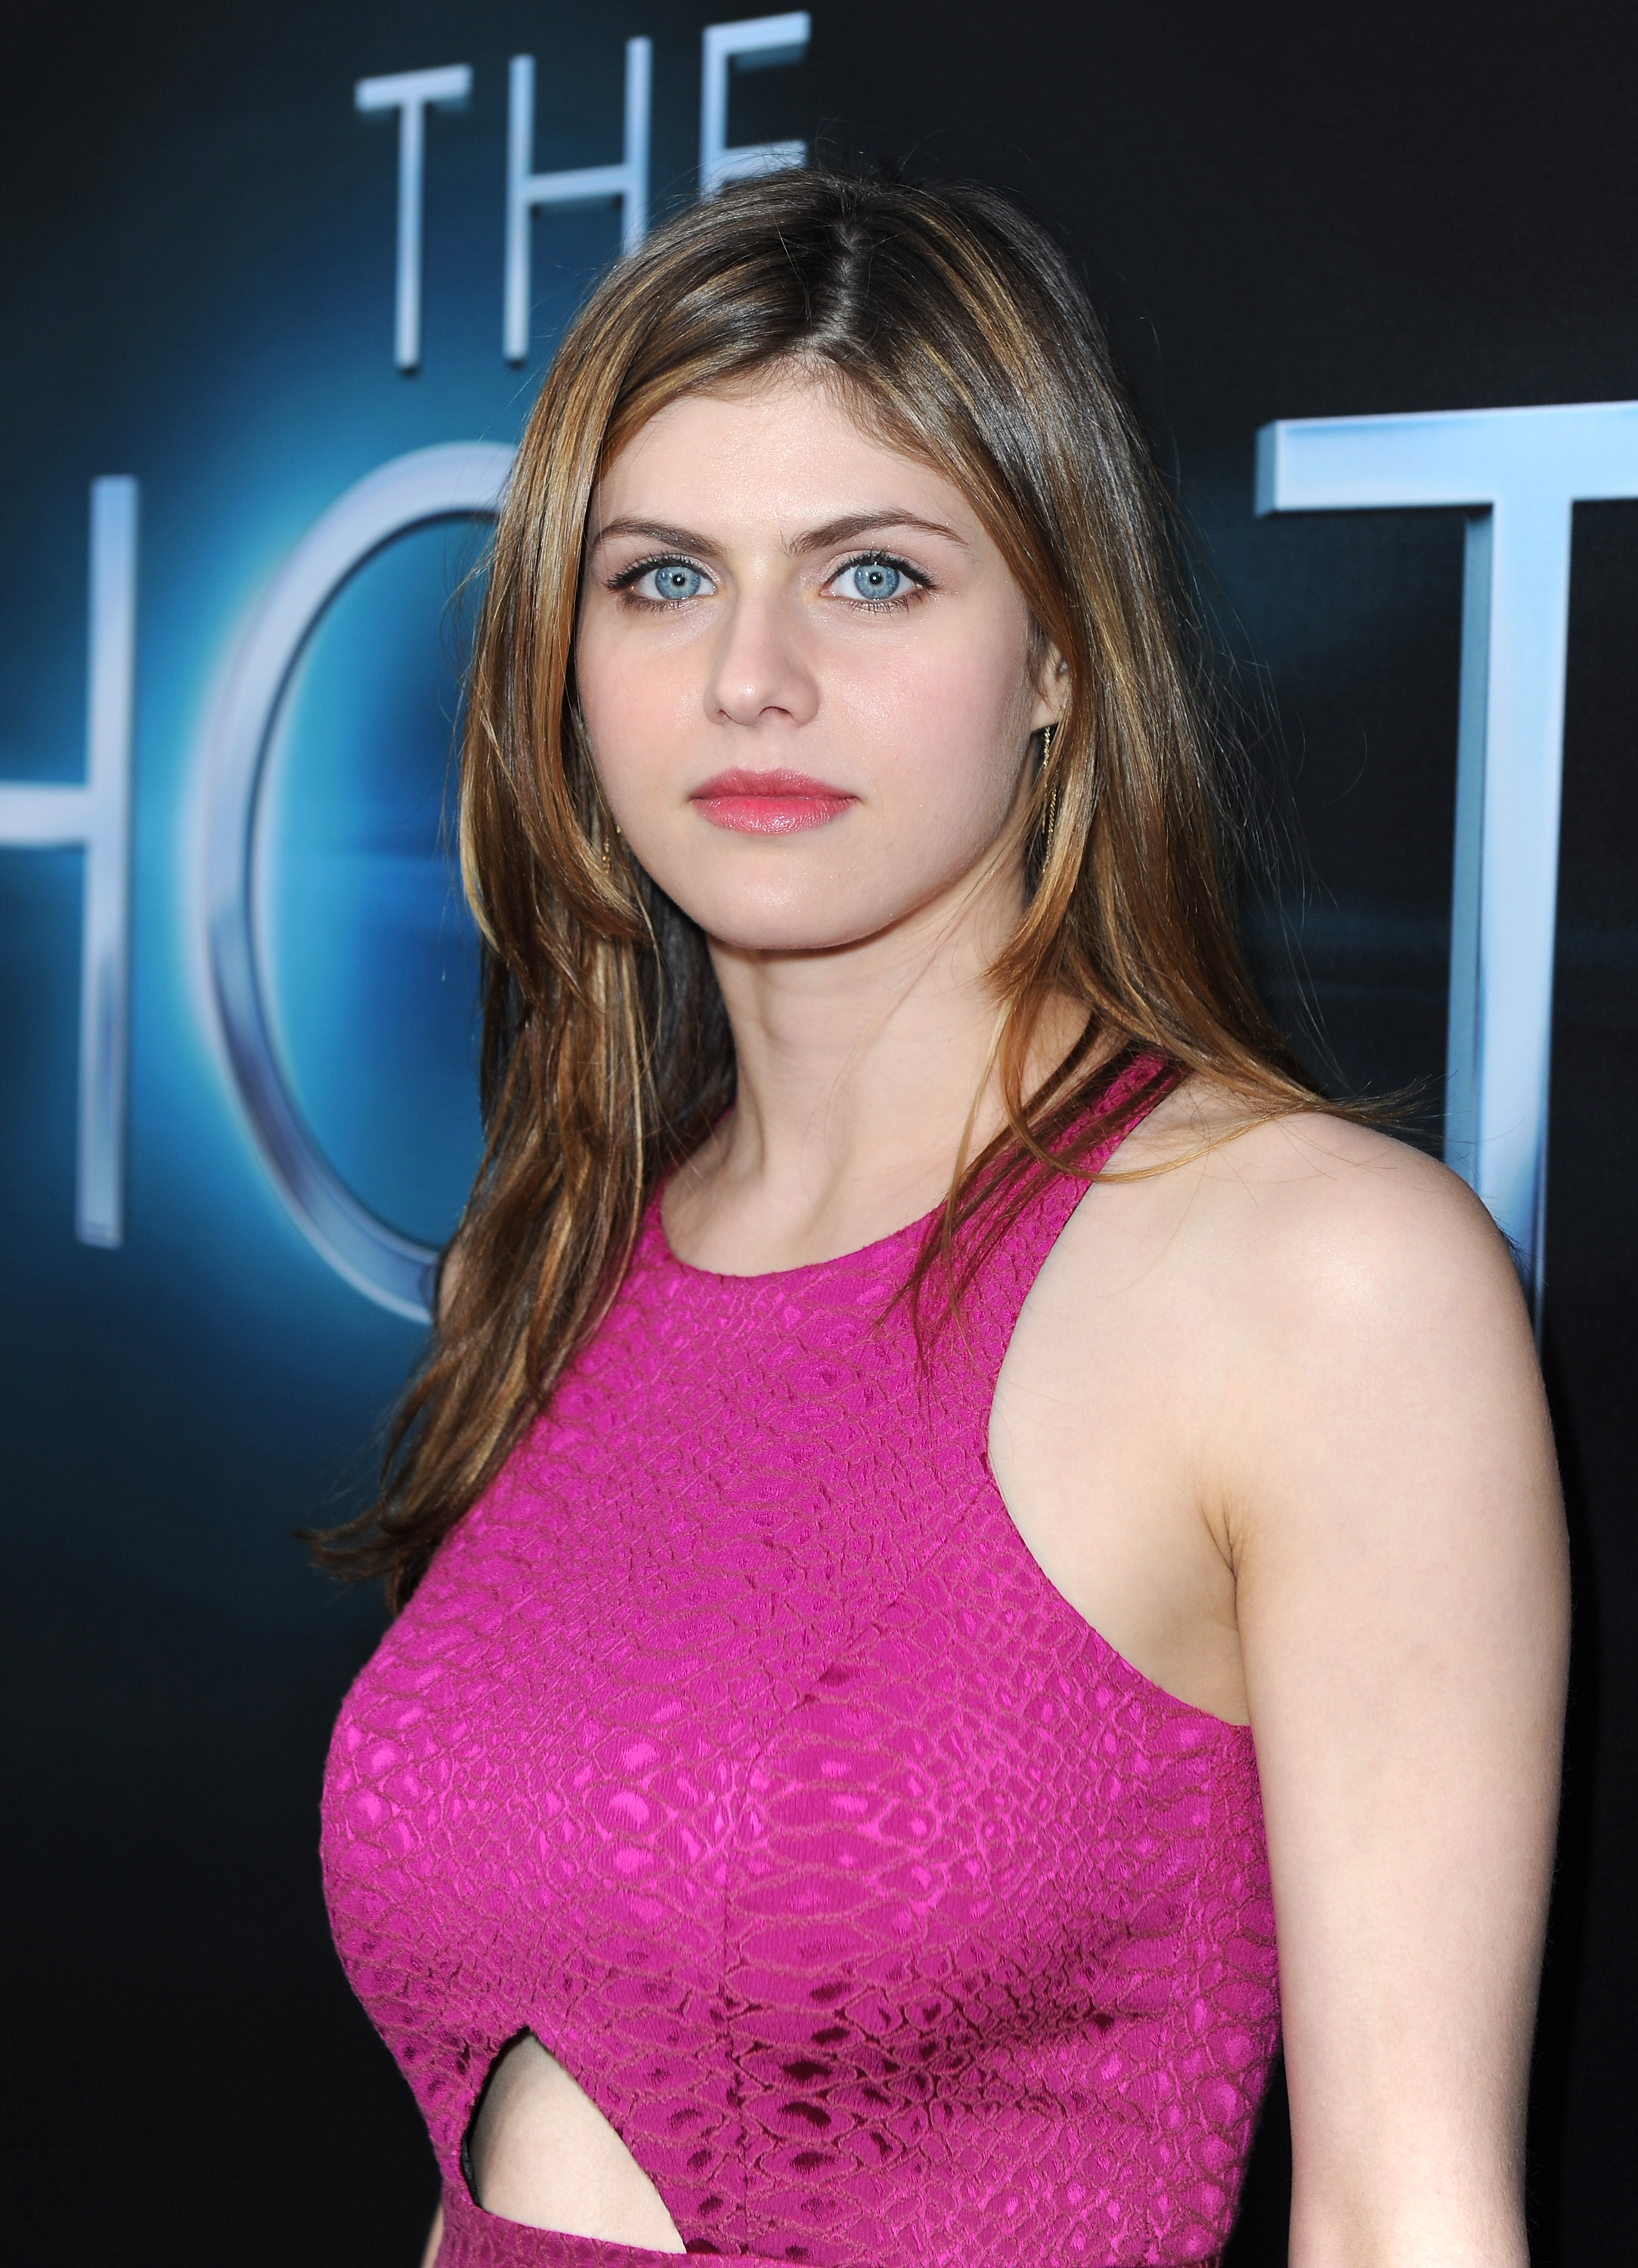 alexandra daddario fotolip com rich image and wallpaper tennis court clip art free images tennis court clipart color book